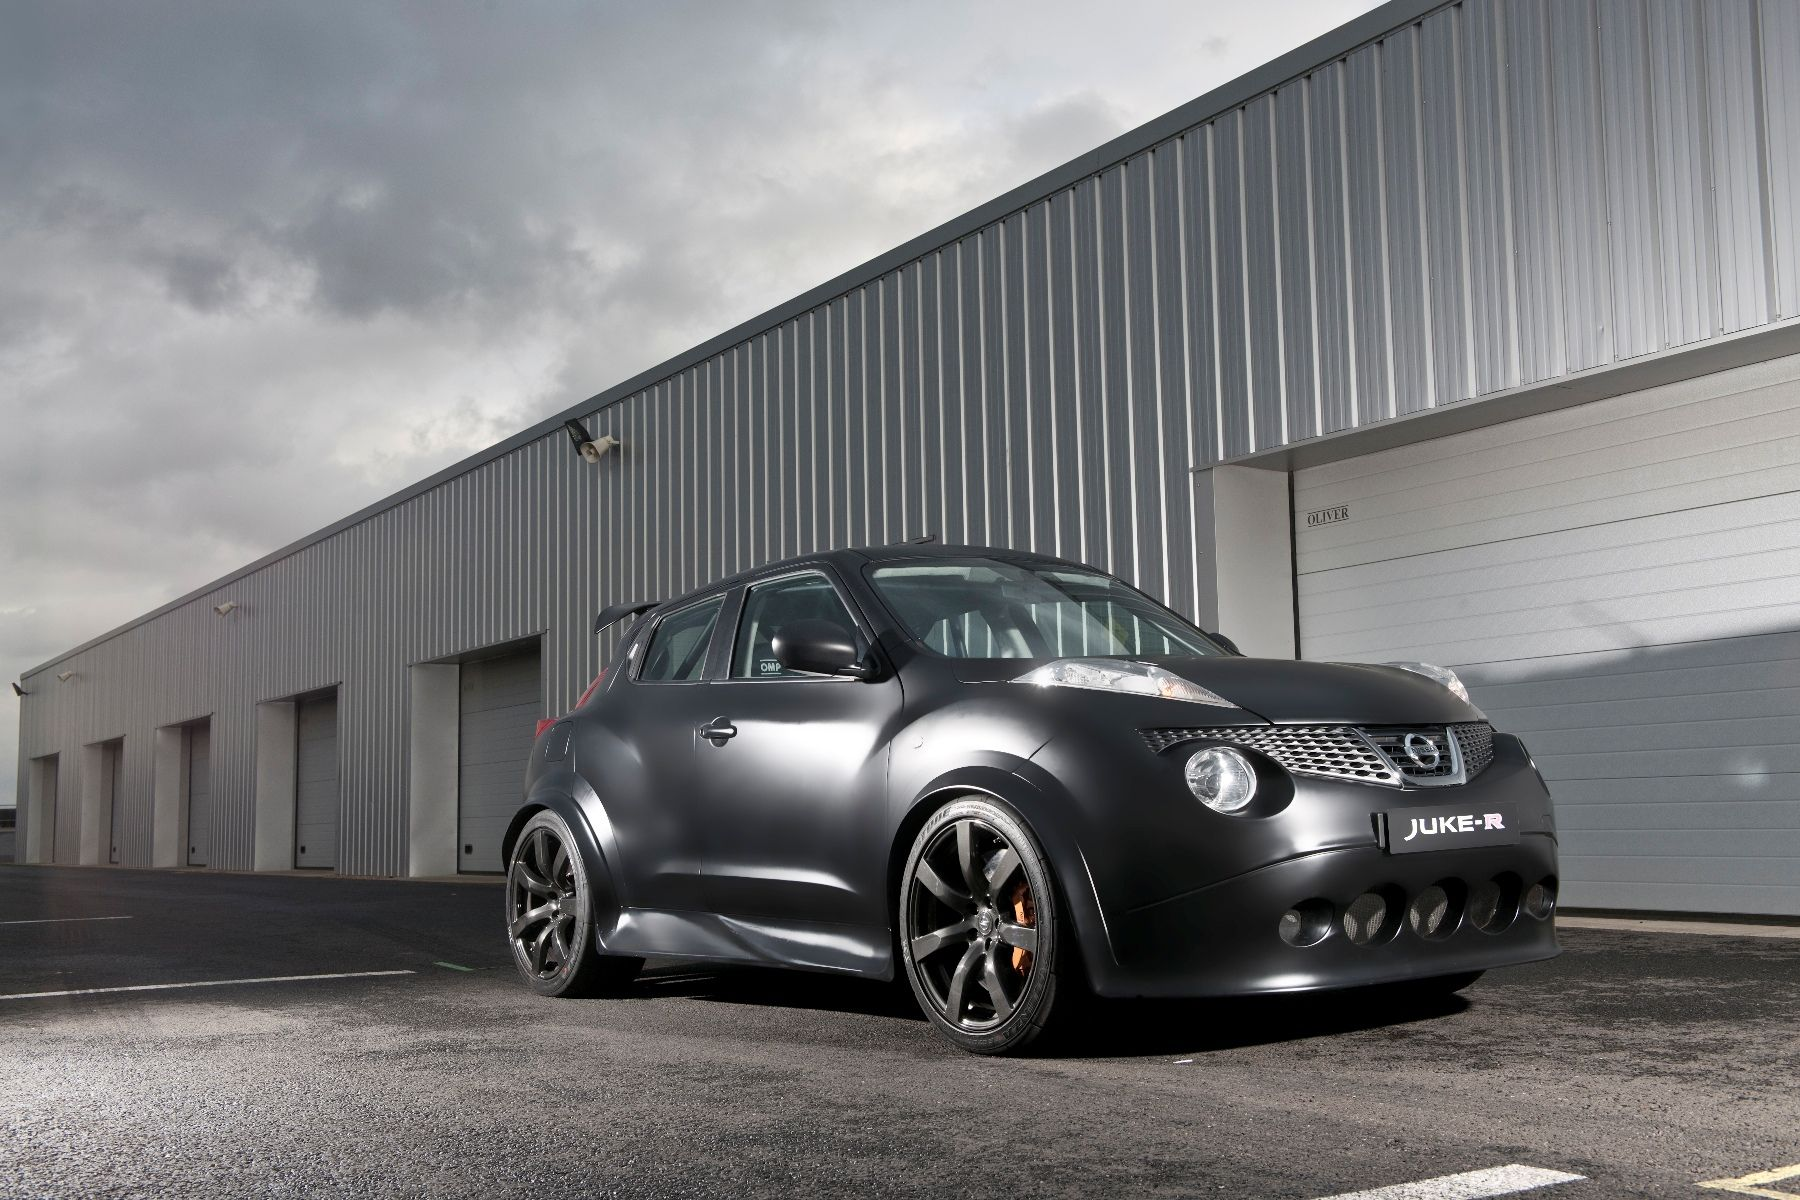 0ea61a27fe37d67b62839f1d5744d2d7 Take A Look About Nissan Juke Custom with Fabulous Photos Cars Review